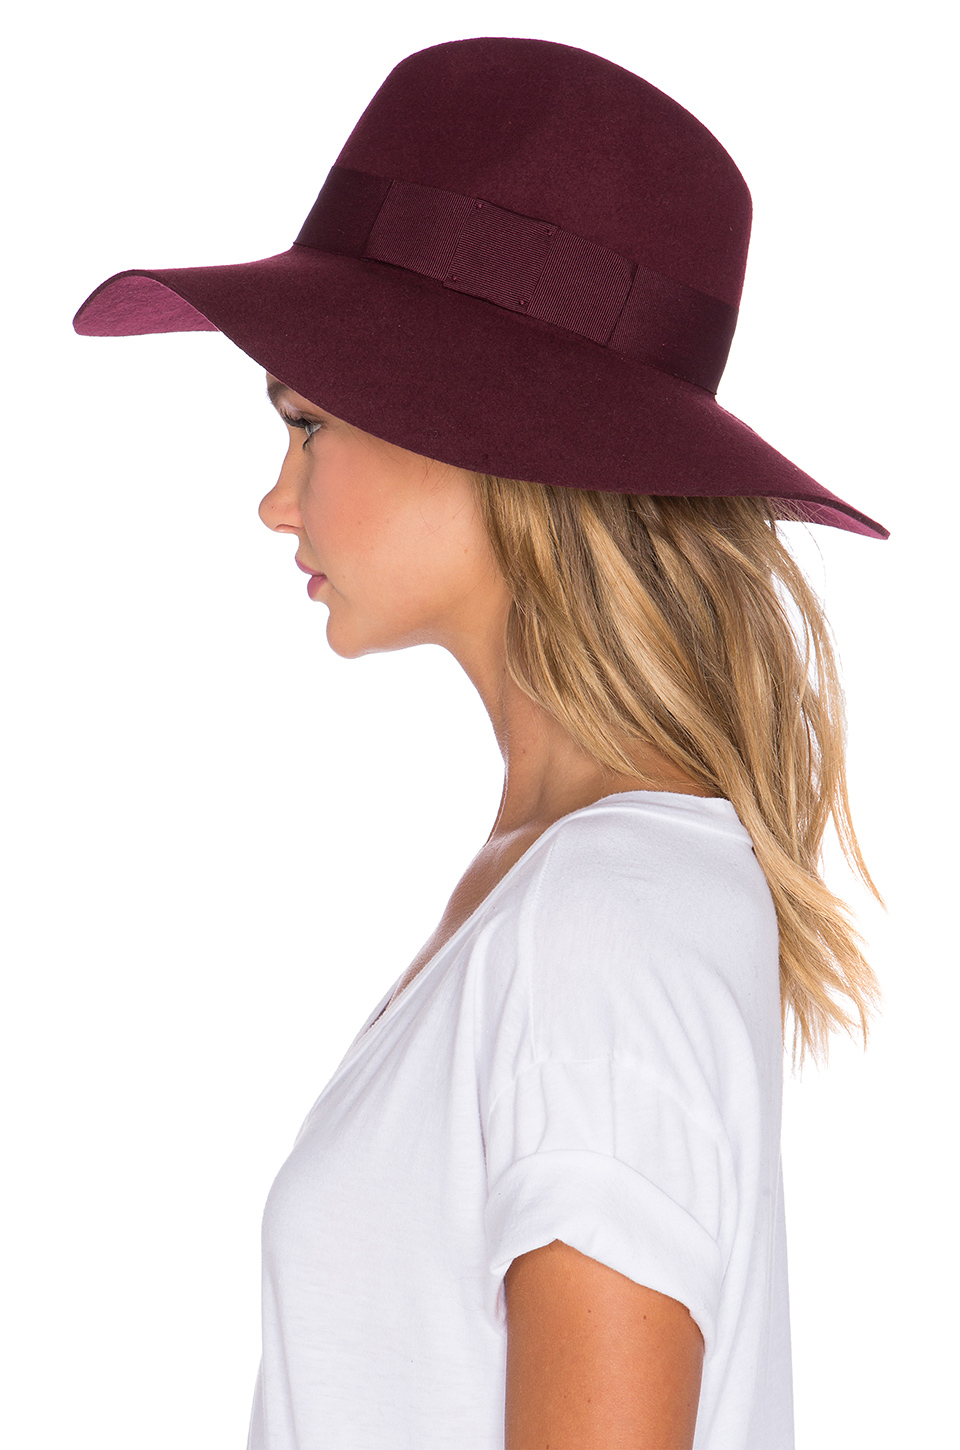 960a34ccfd4c3 ... amazon lyst brixton piper hat in red 3940f d0603 ...